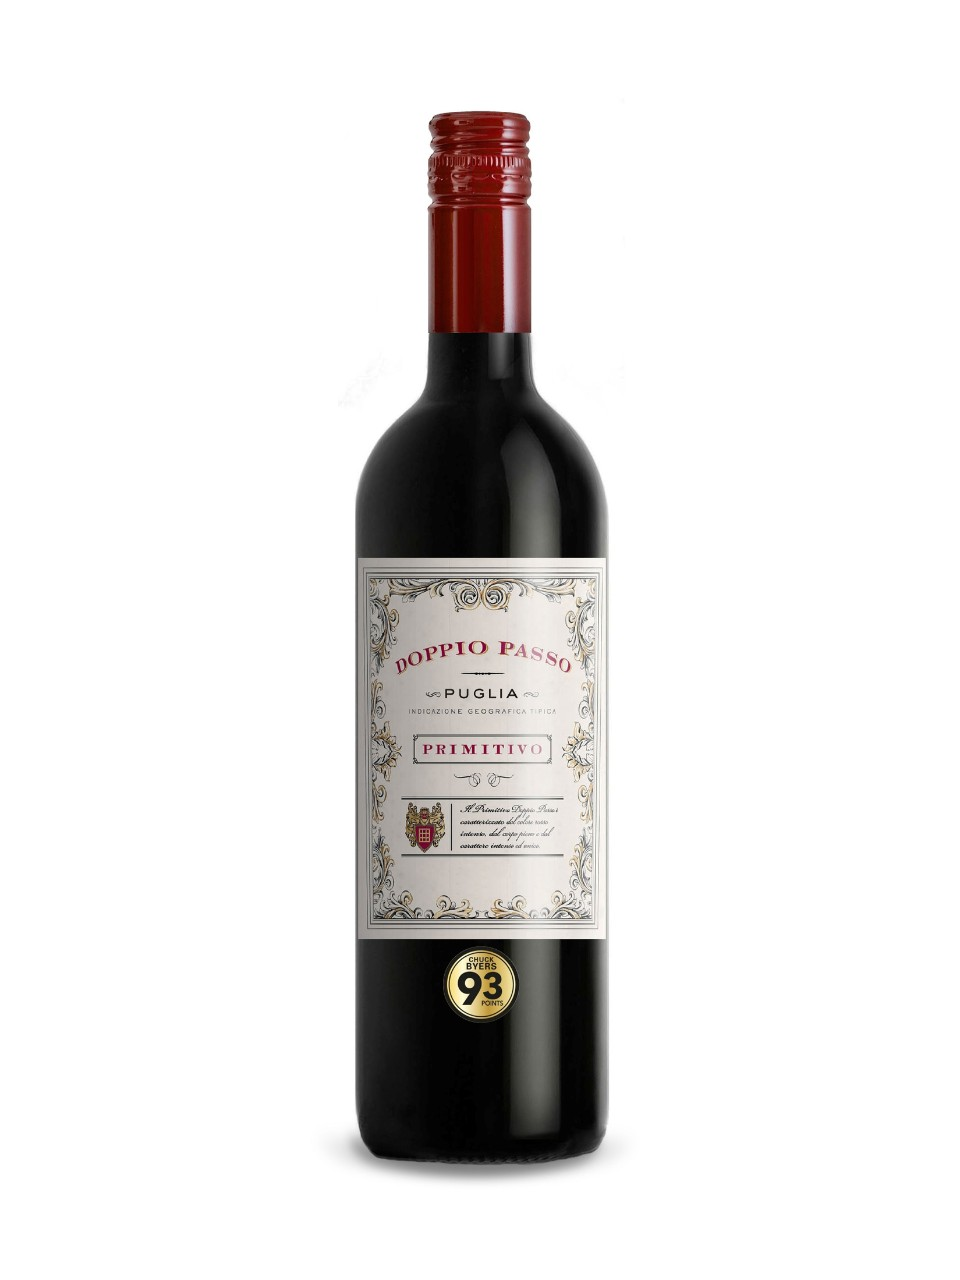 Image for Doppio Passo Botter Primitivo Salento IGT from LCBO